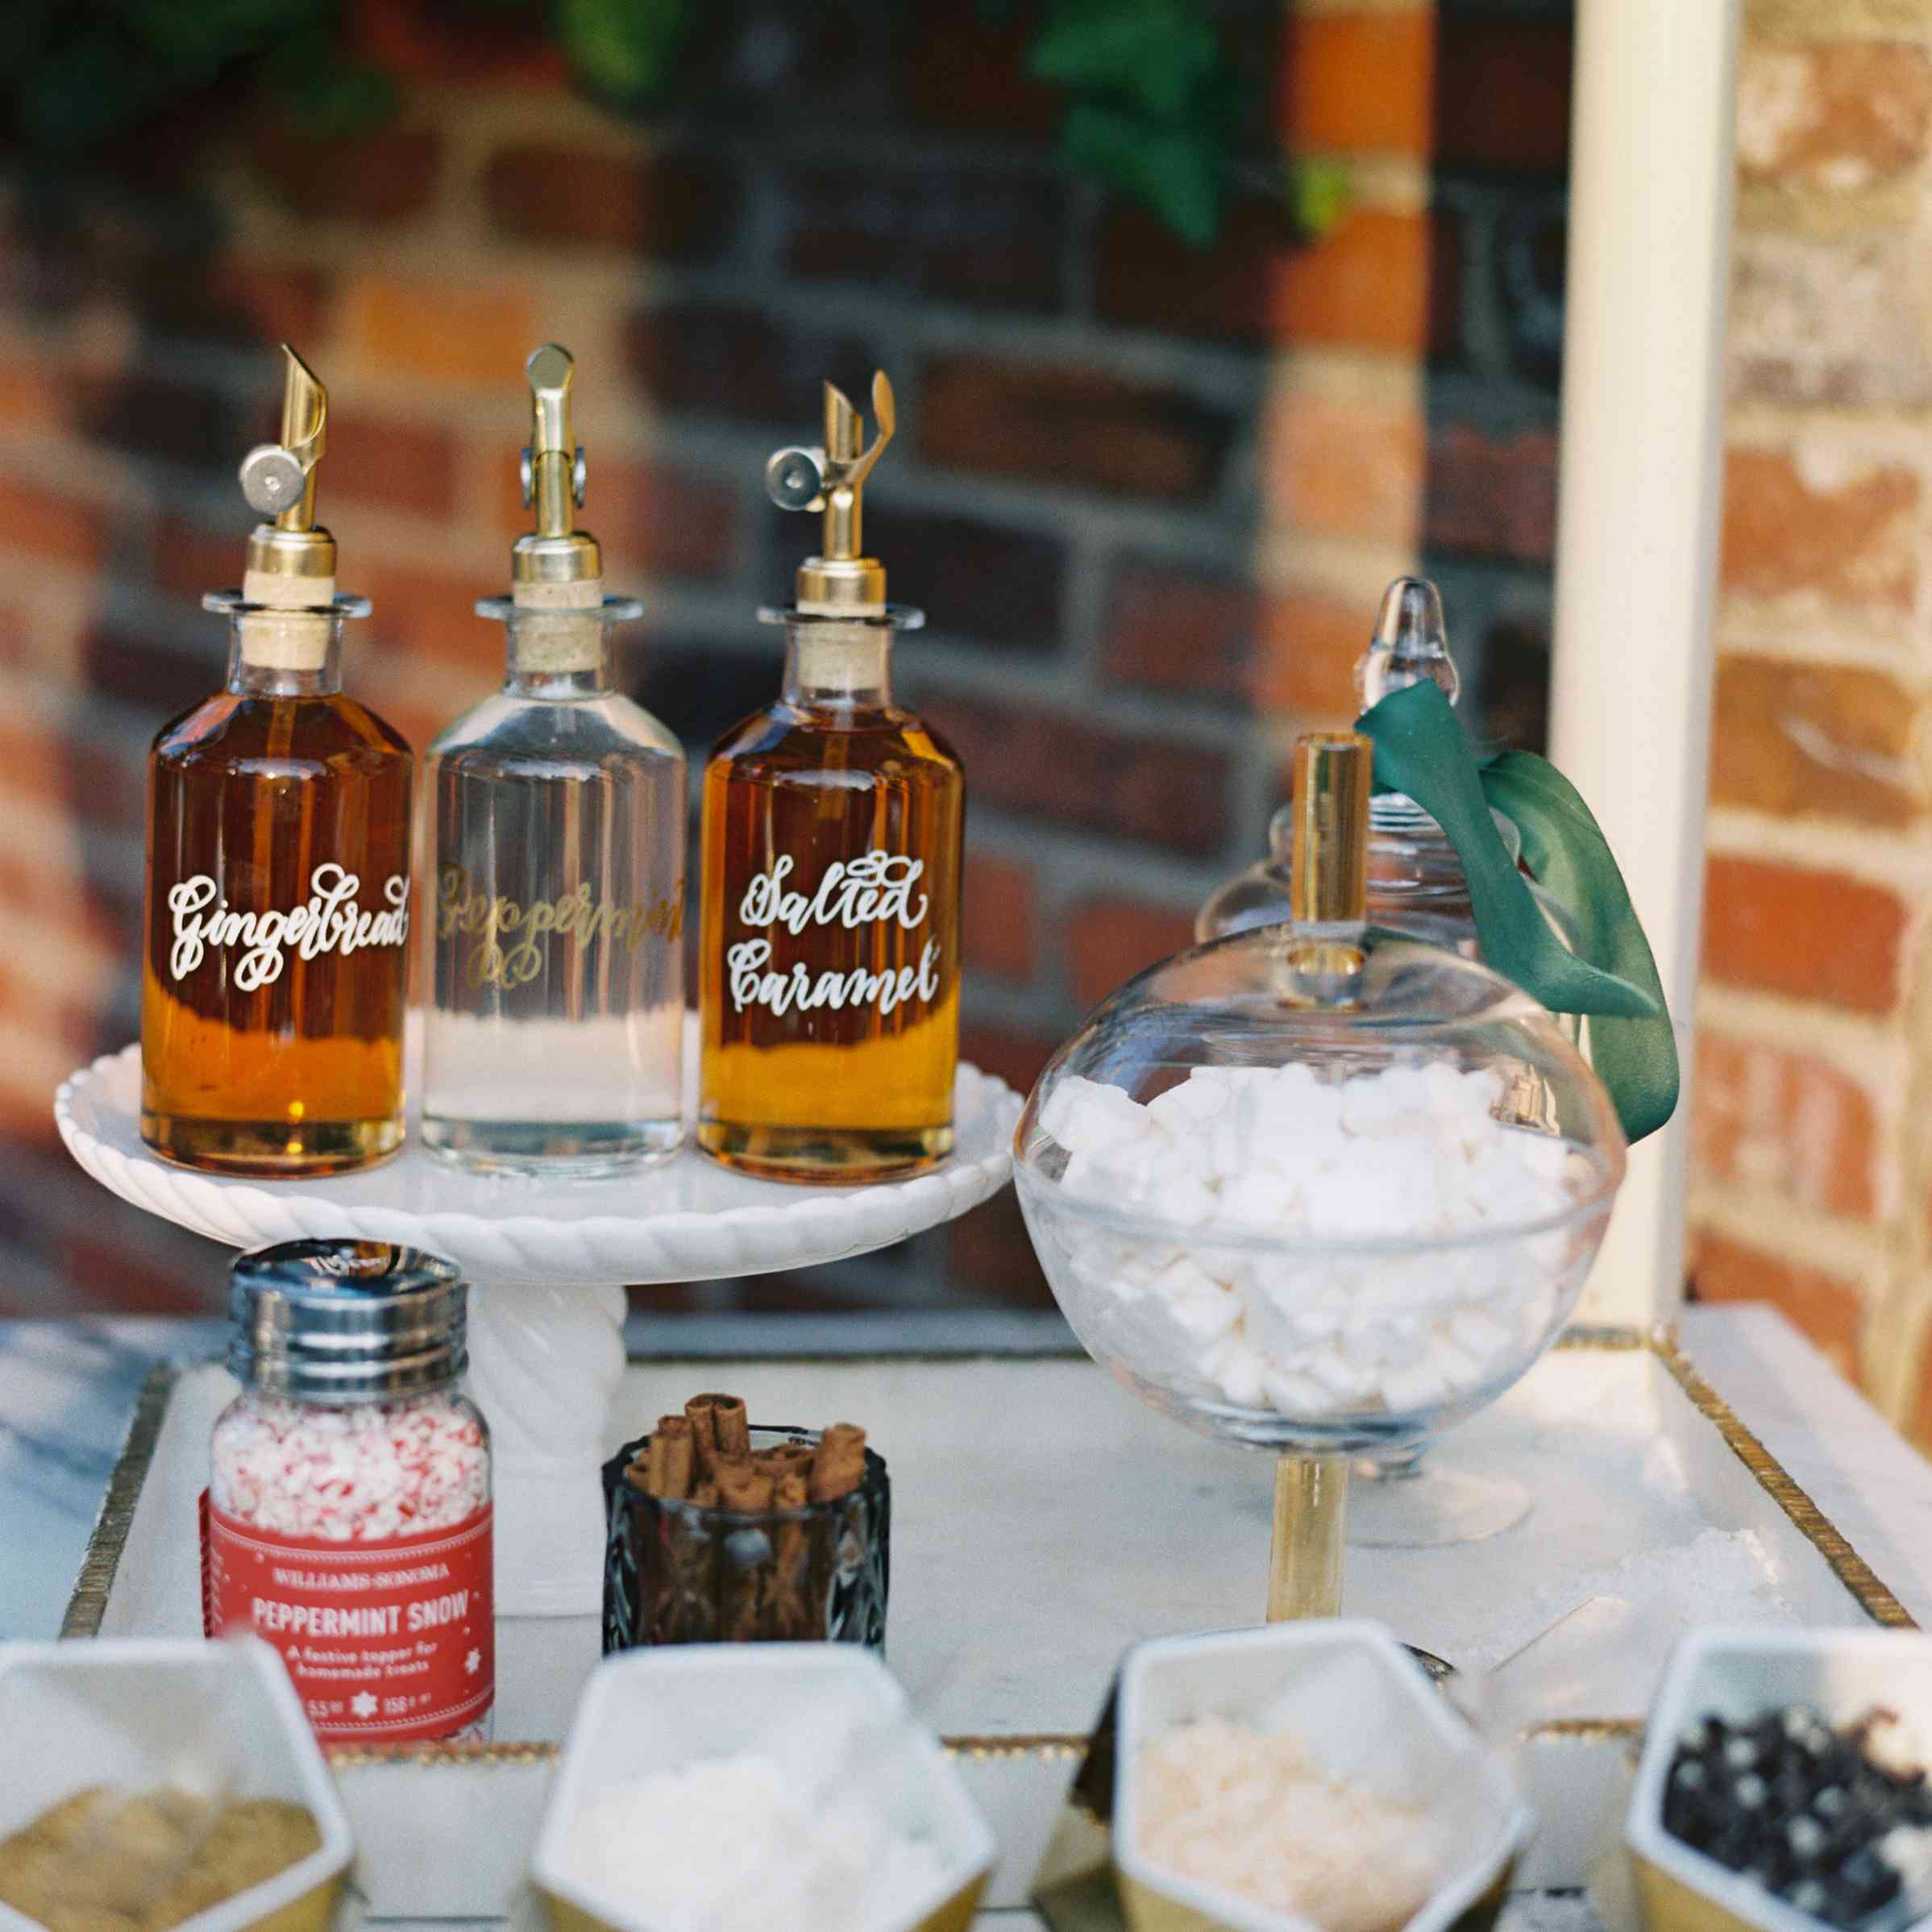 Toppings and flavor syrups at hot cocoa bar